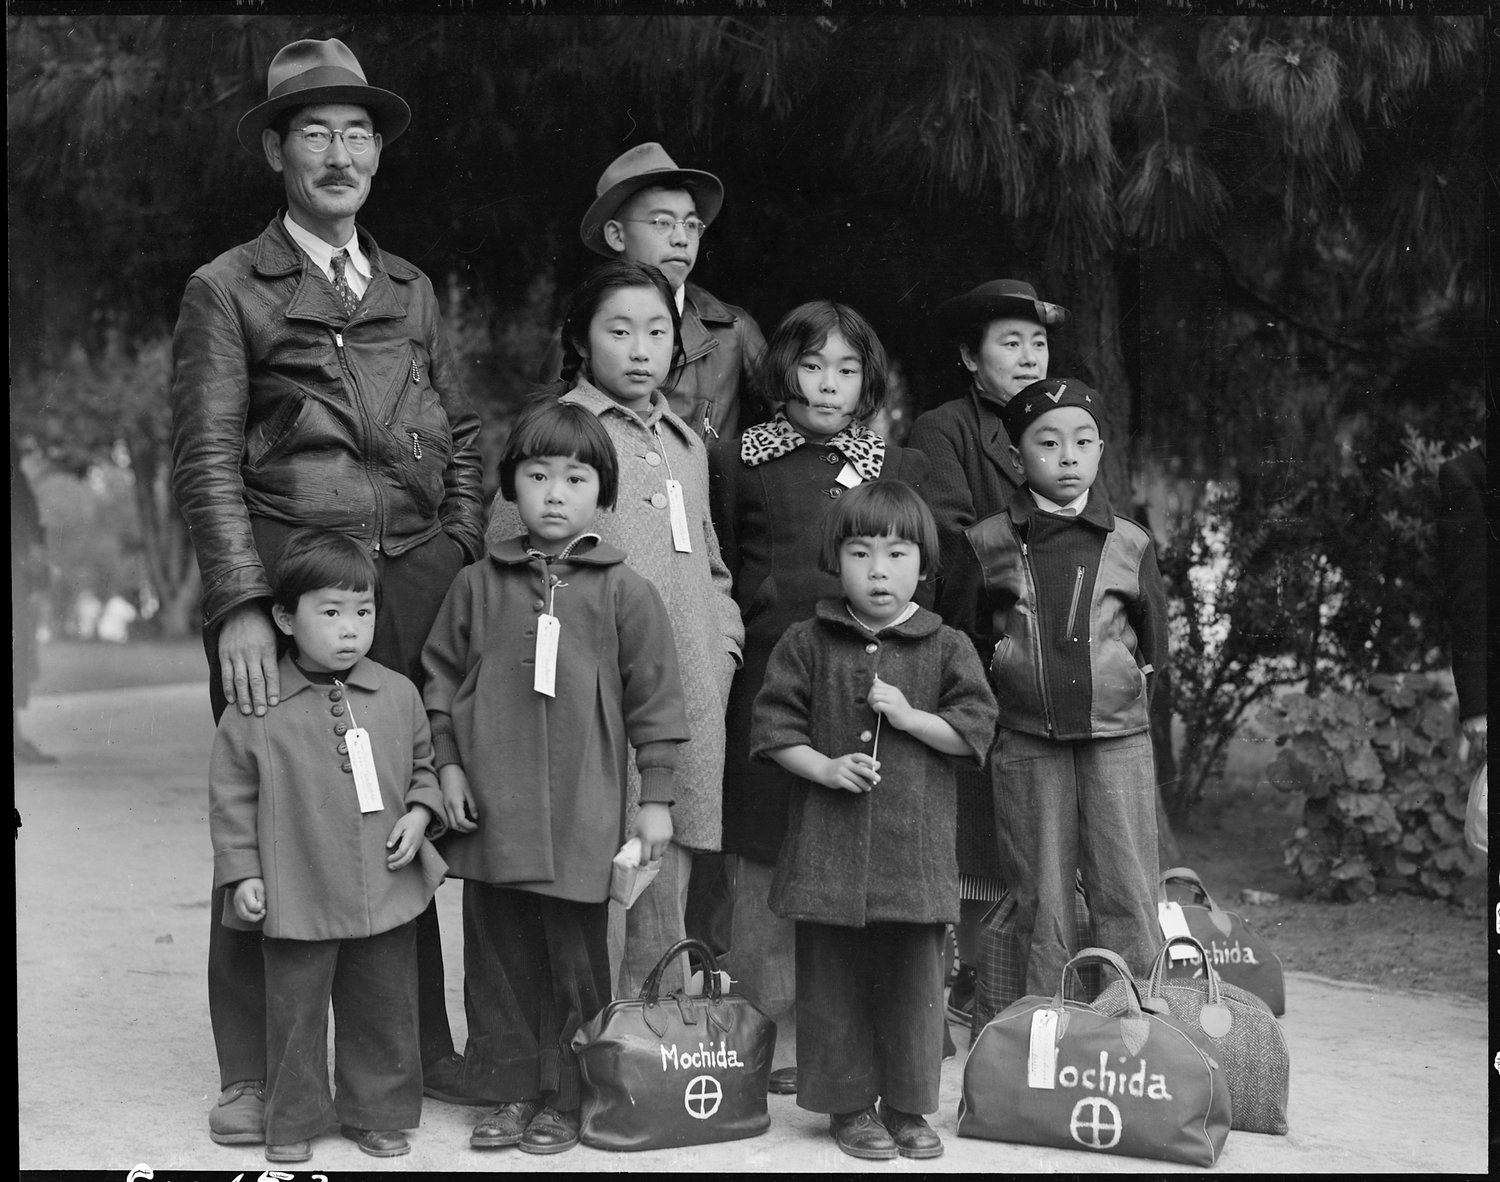 A Japanese American family with their luggage and ID tags  via